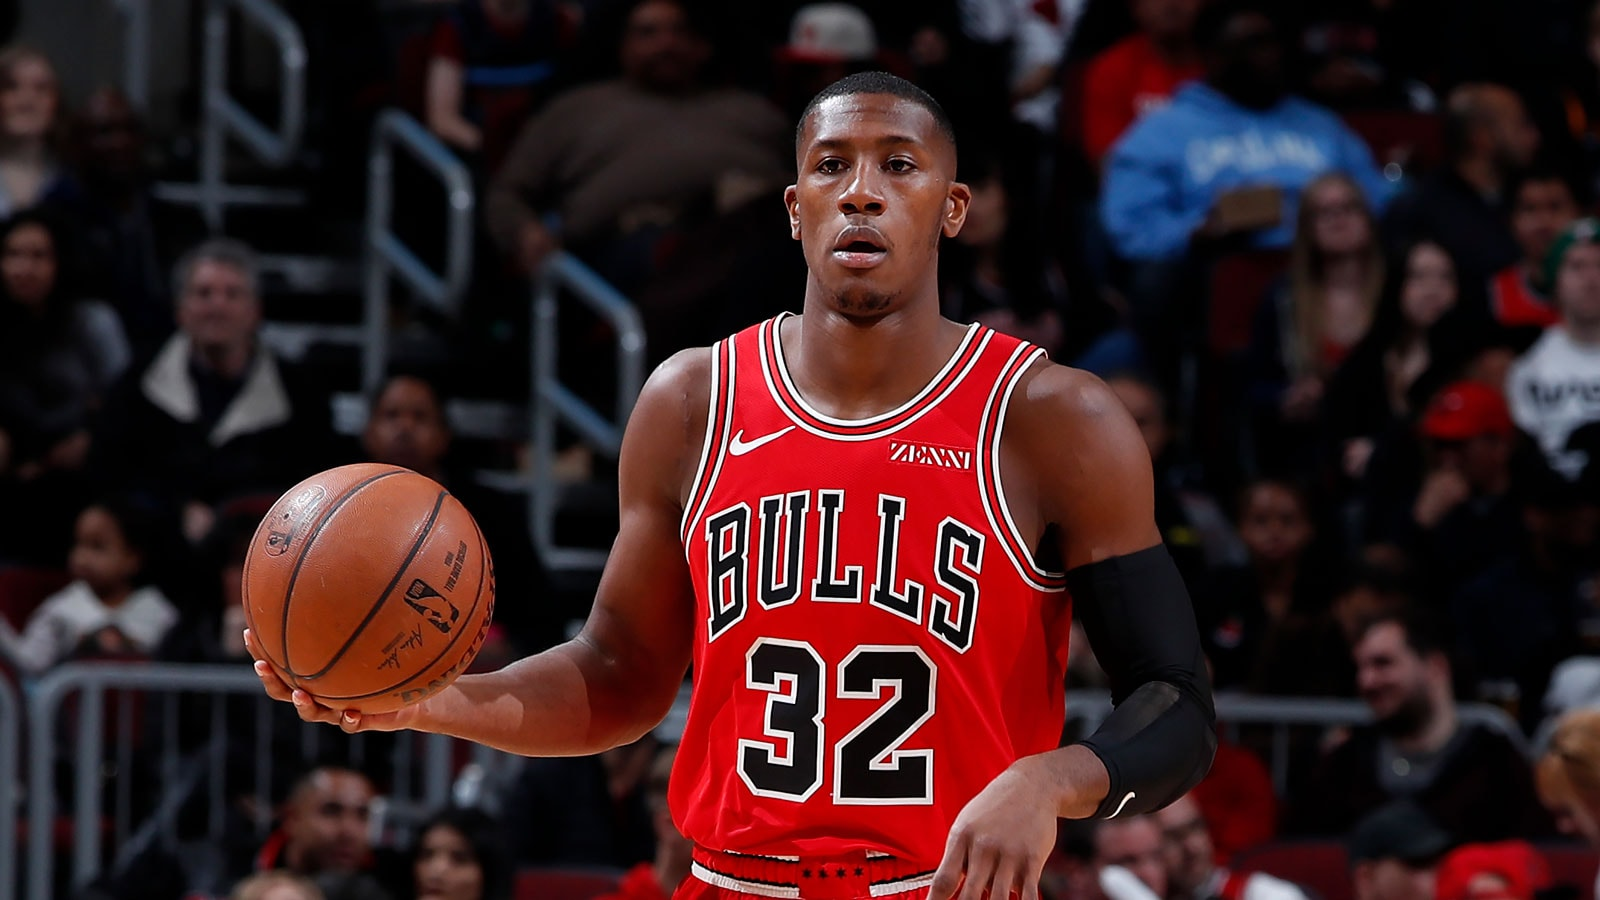 Kris Dunn #32 of the Chicago Bulls handles the ball against the Charlotte Hornets on March 23, 2019 at United Center in Chicago, Illinois.